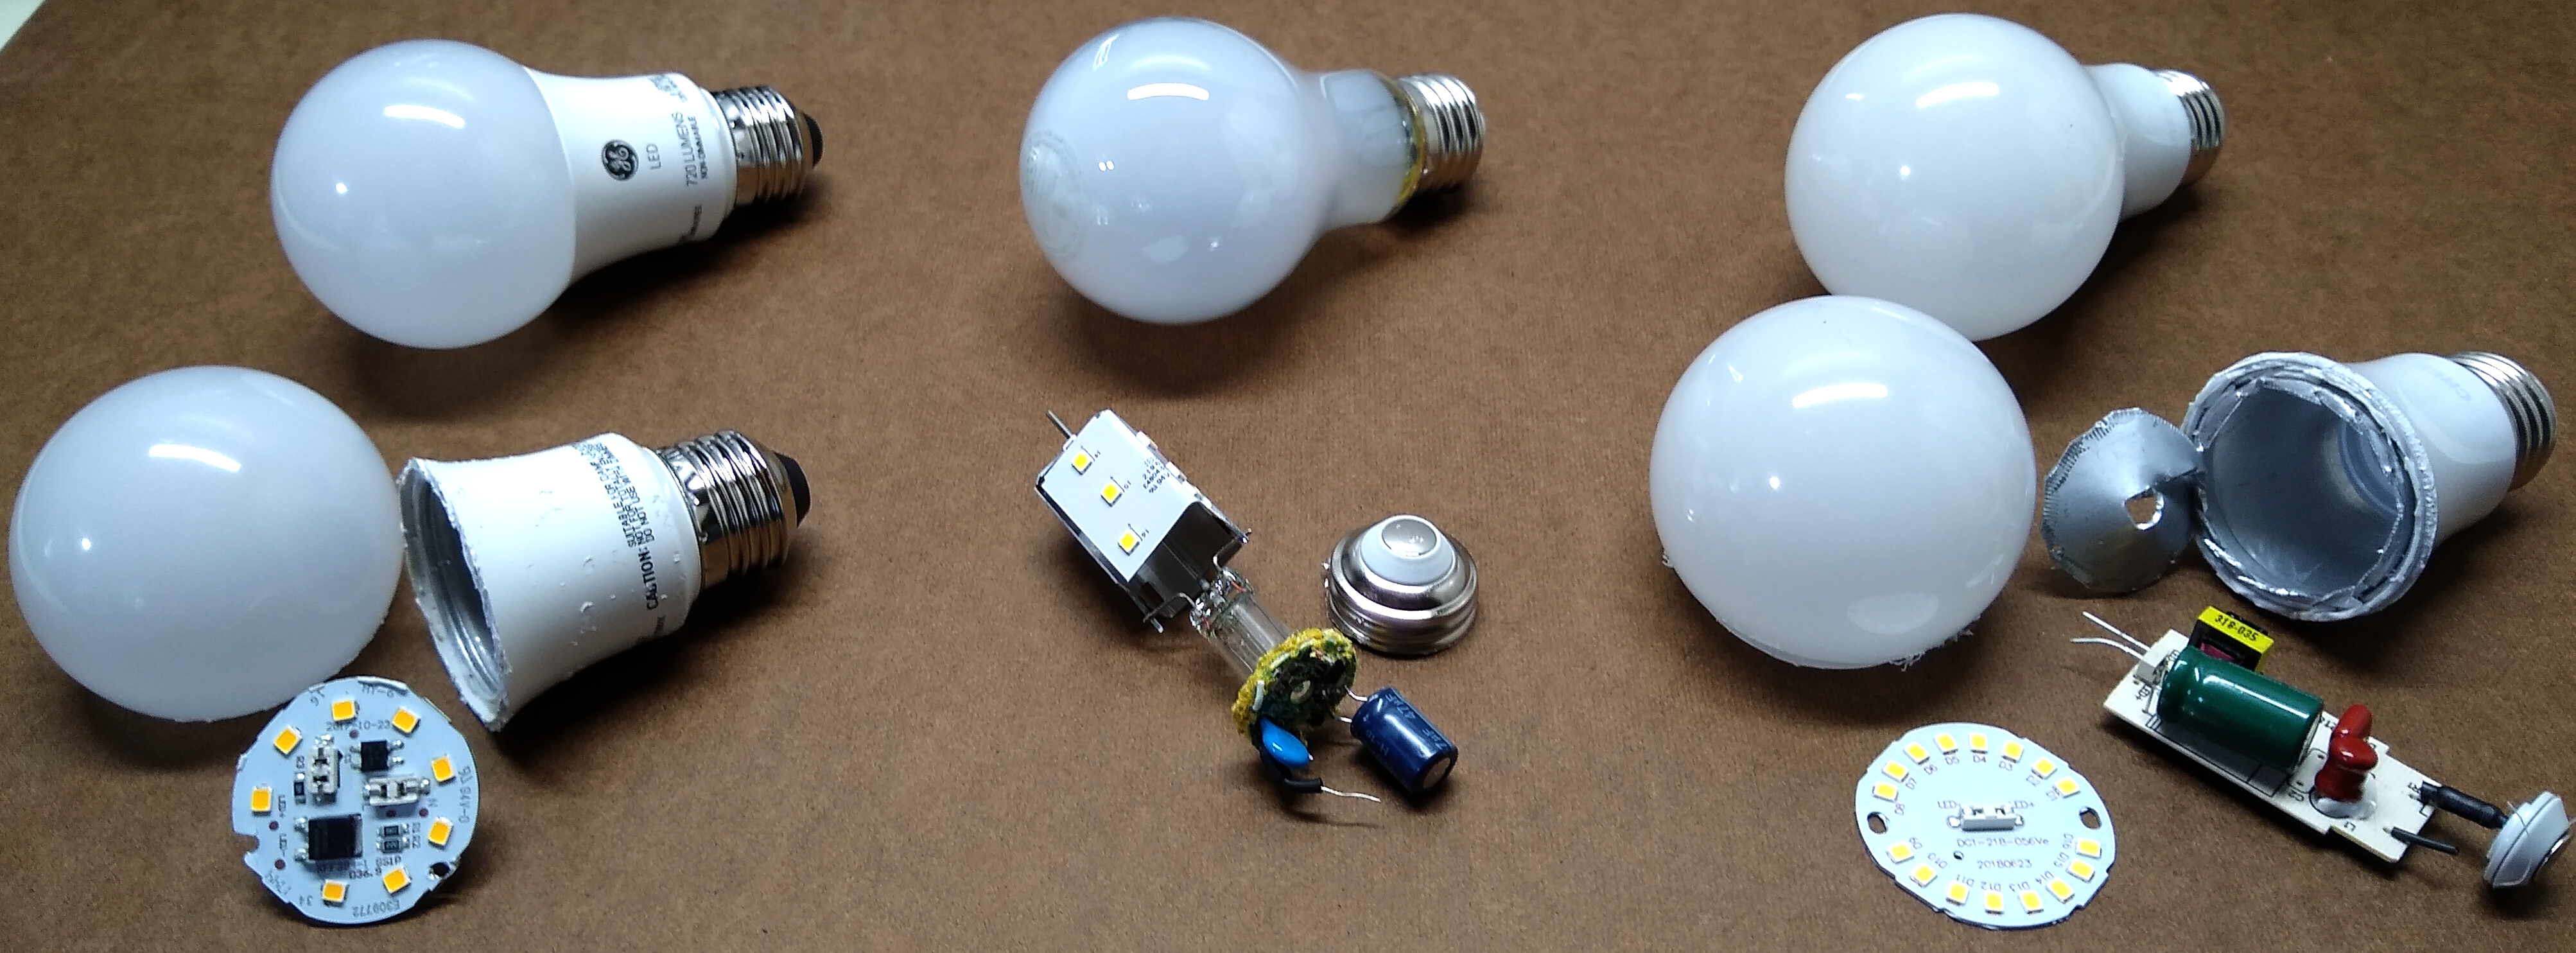 What Happened To The 100,000-Hour LED Bulbs? | aday on